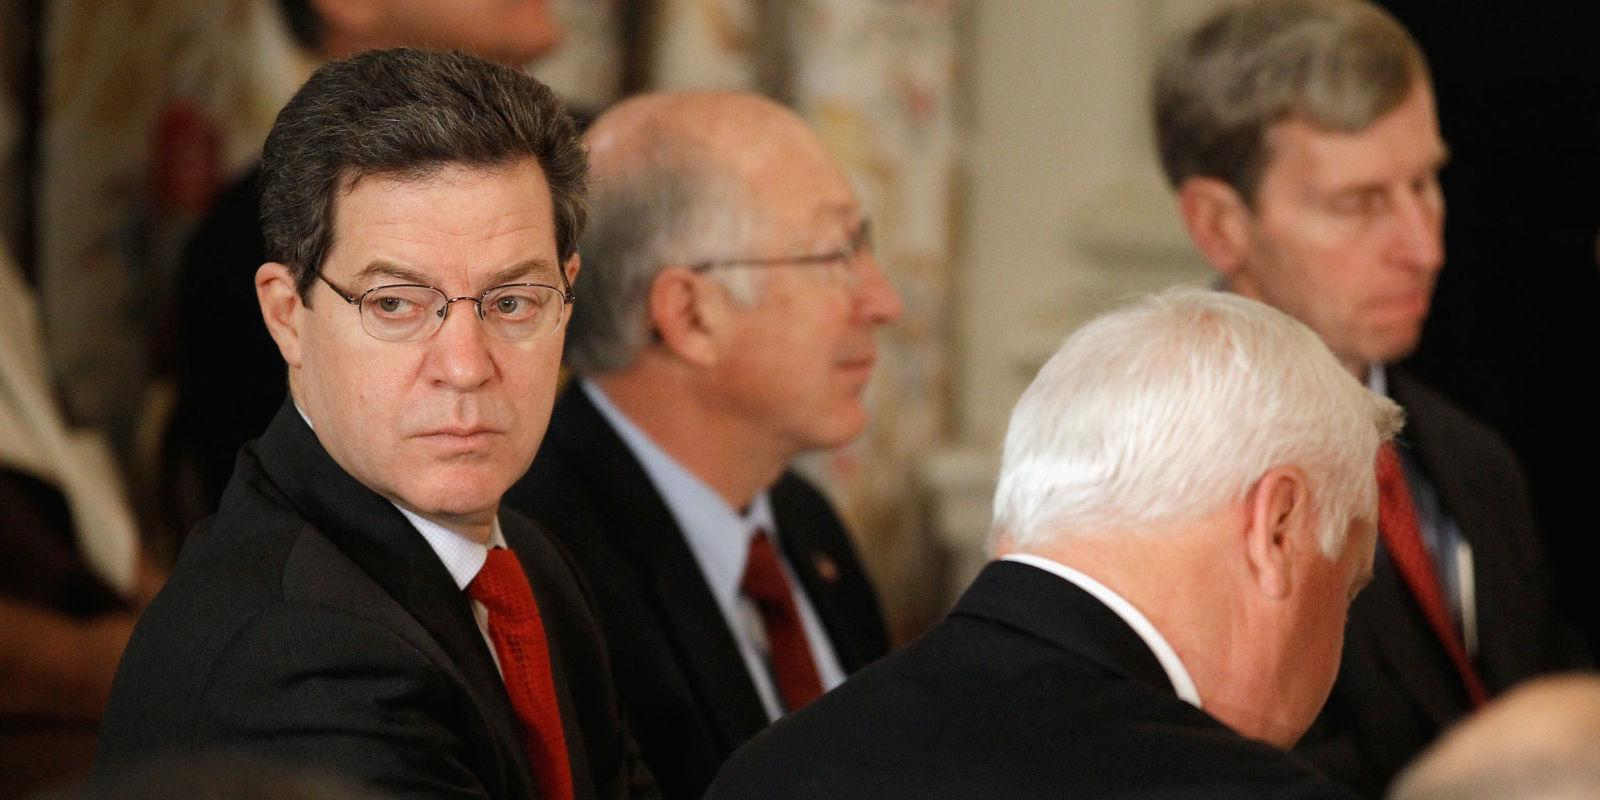 Today in the Fiasco That Is the Great State of Kansas Under Gov. Sam Brownback